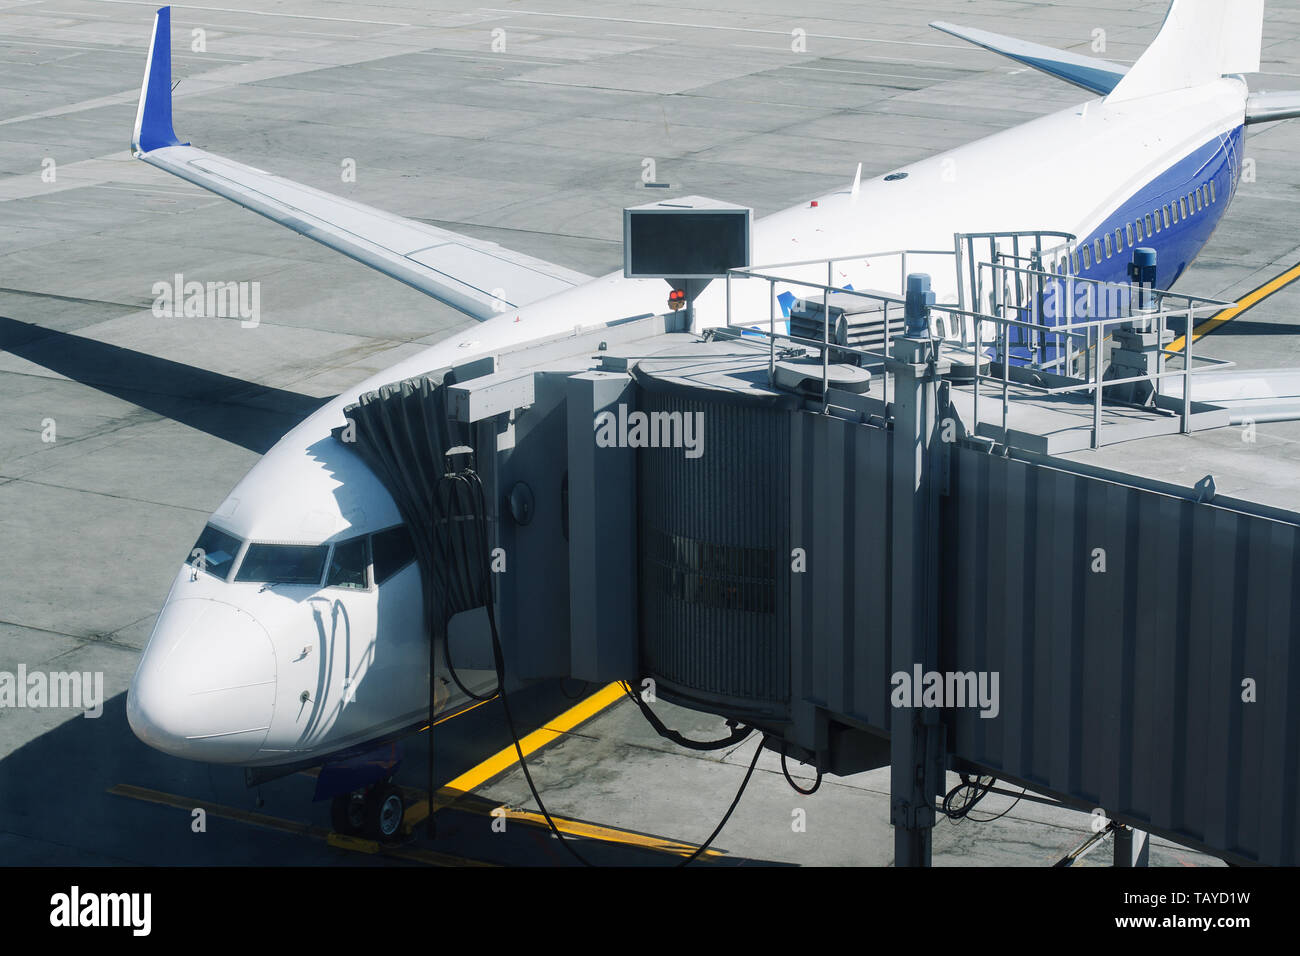 horizontal front view closeup of passenger plane with embarkation tunnel ready for take off on airport runway - Stock Image